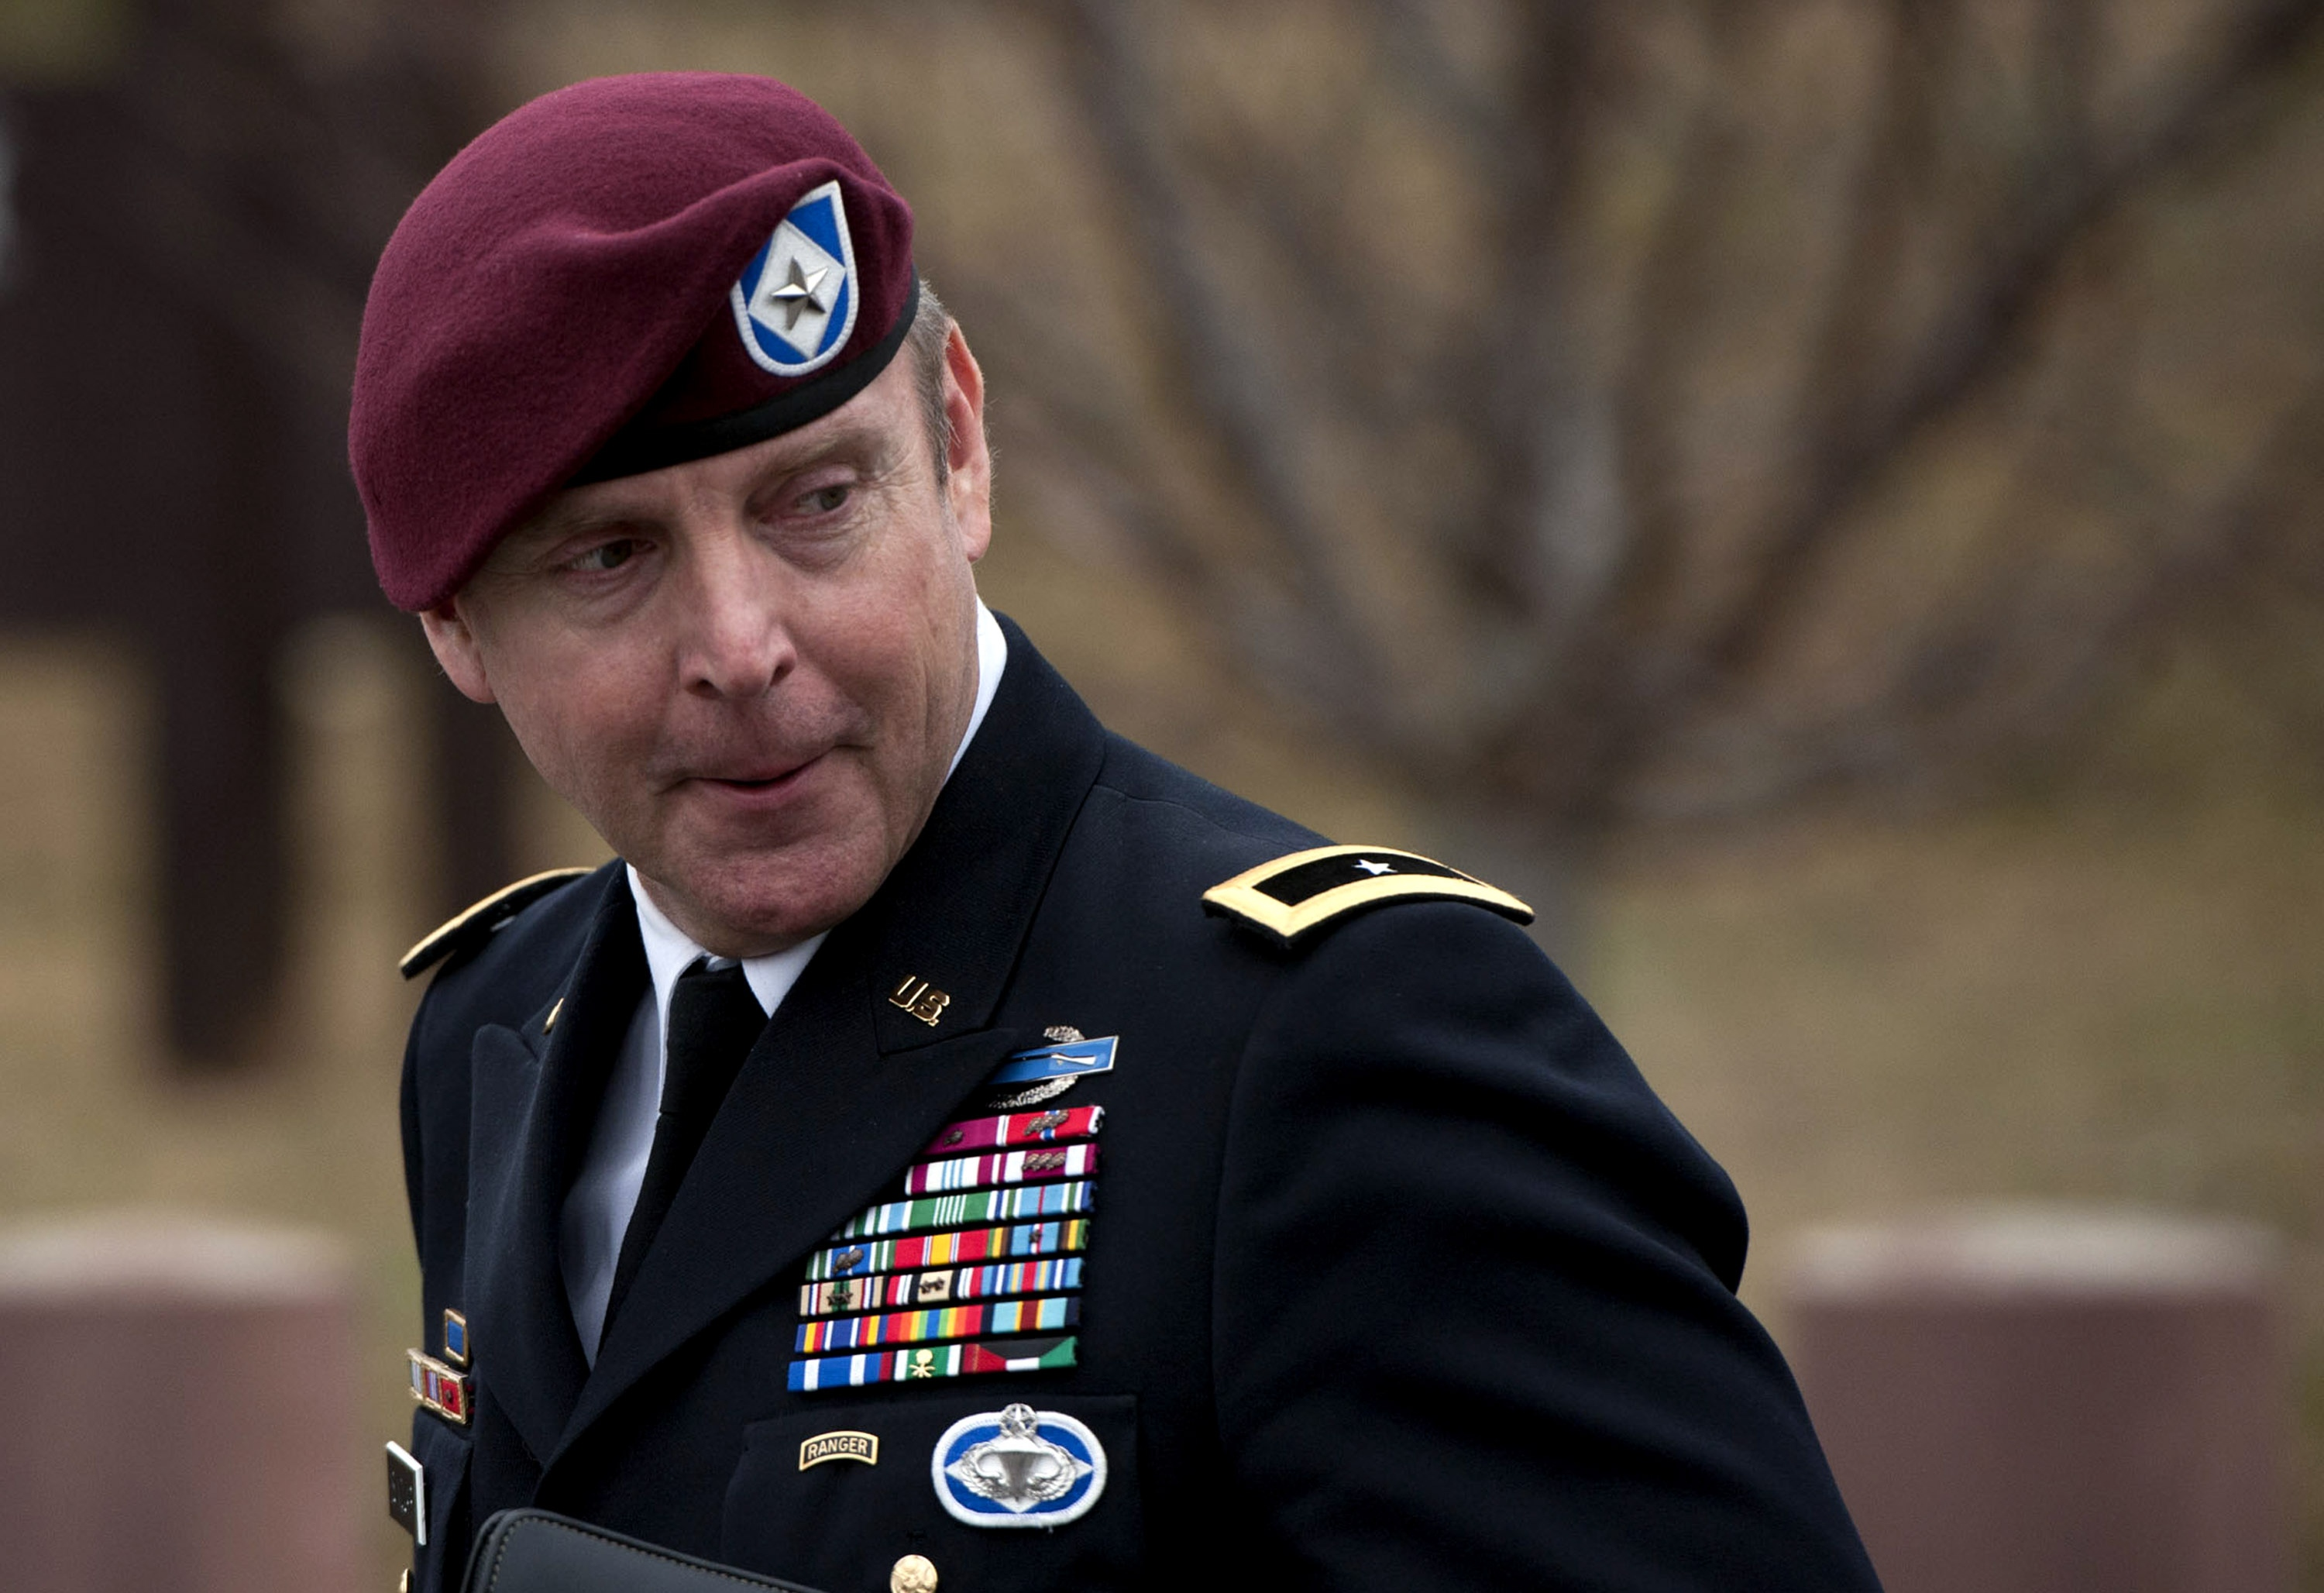 Brig. Gen. Jeffrey Sinclair (Photo credit: Davis Turner/Getty Images)